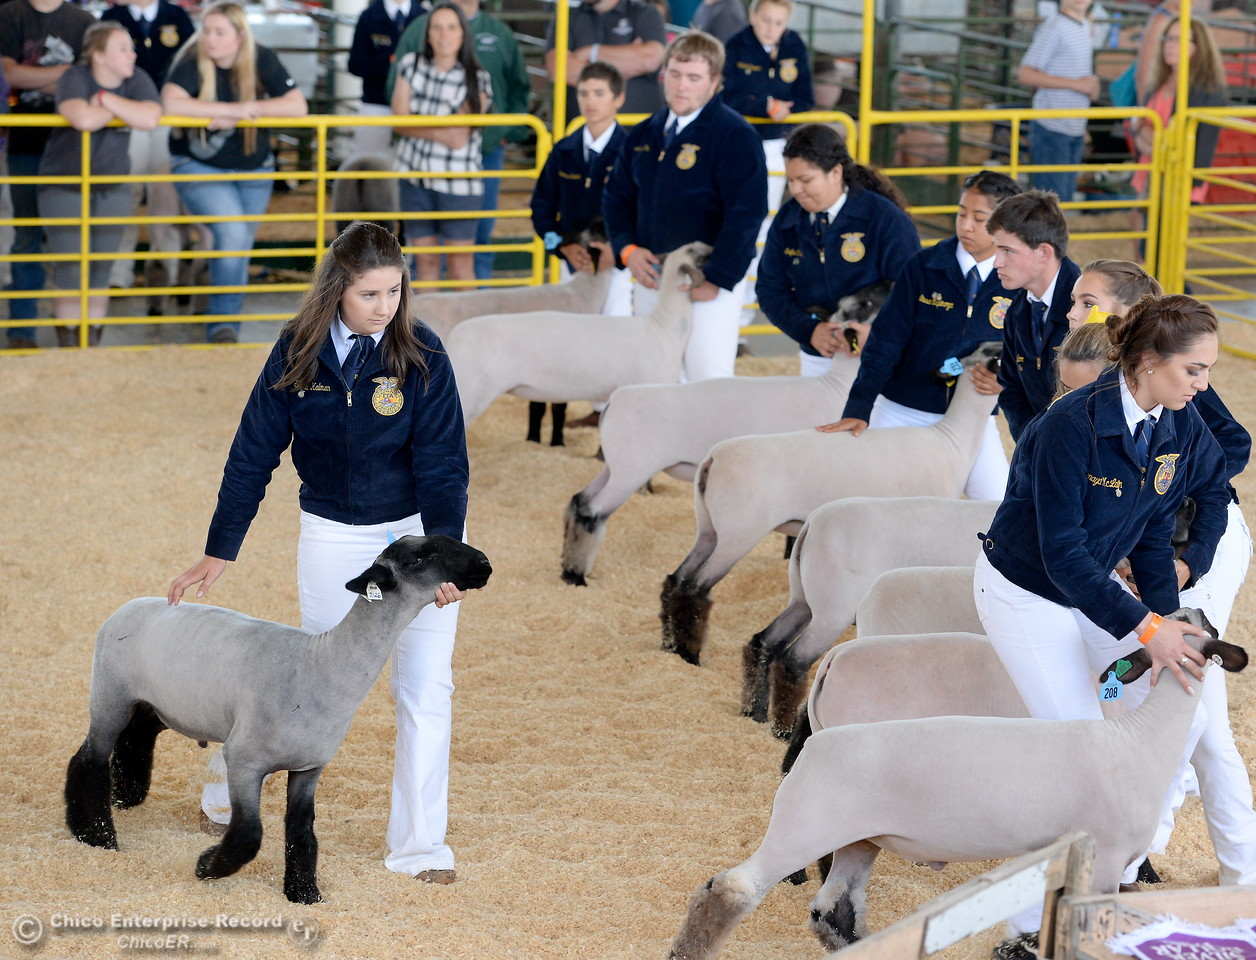 Sheep are judged in the show ring at the Silver Dollar Fair in Chico, Calif. Thurs. May 25, 2017. (Bill Husa -- Enterprise-Record)